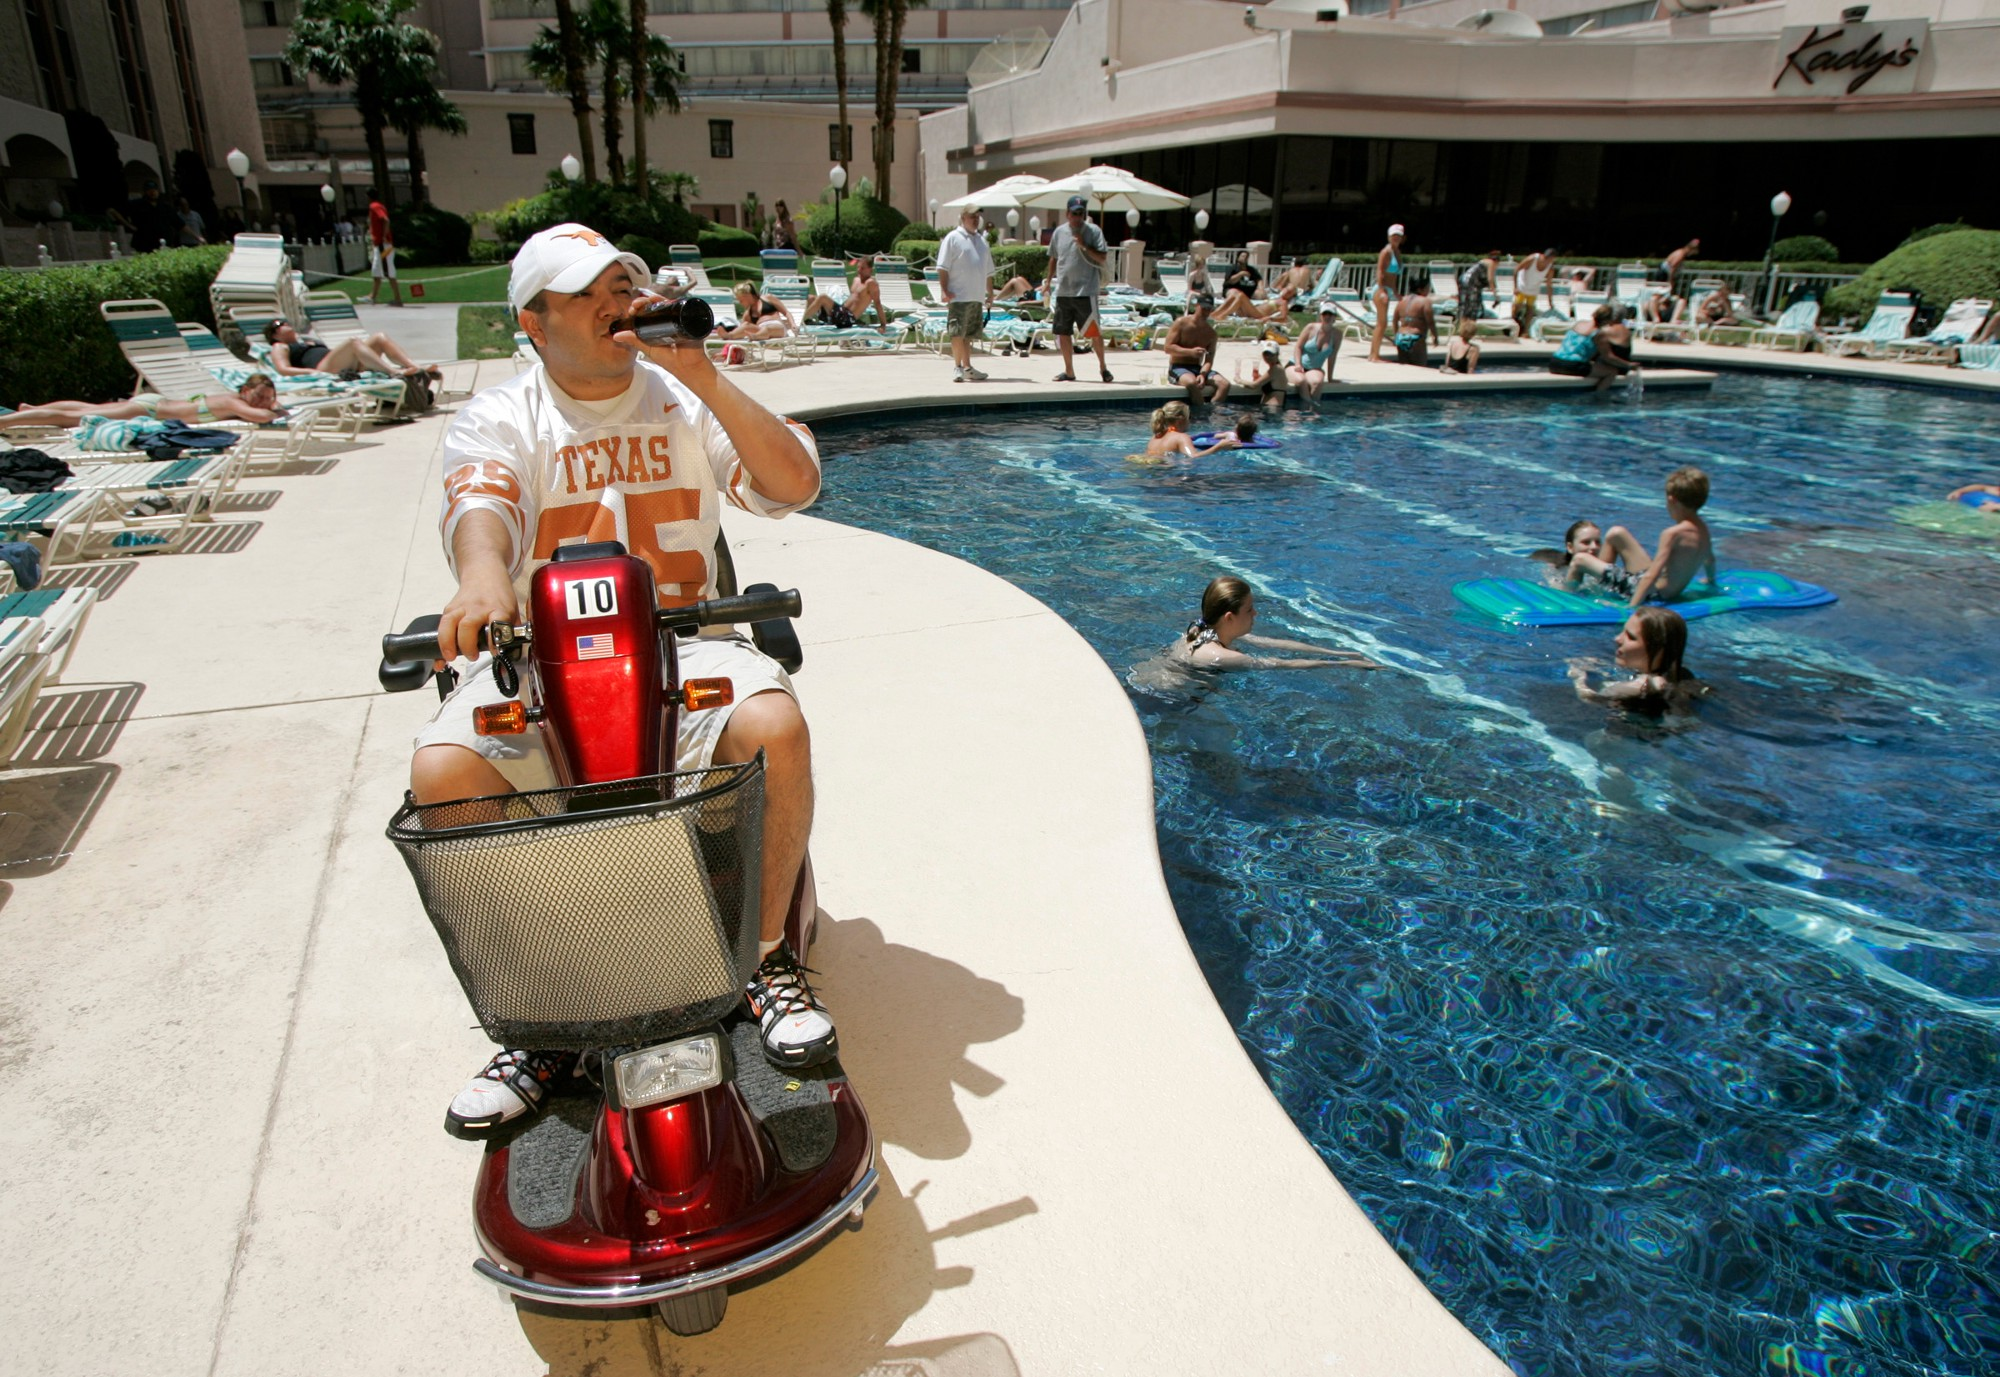 How Mobility Scooters Went From Garage Project To Multibillion